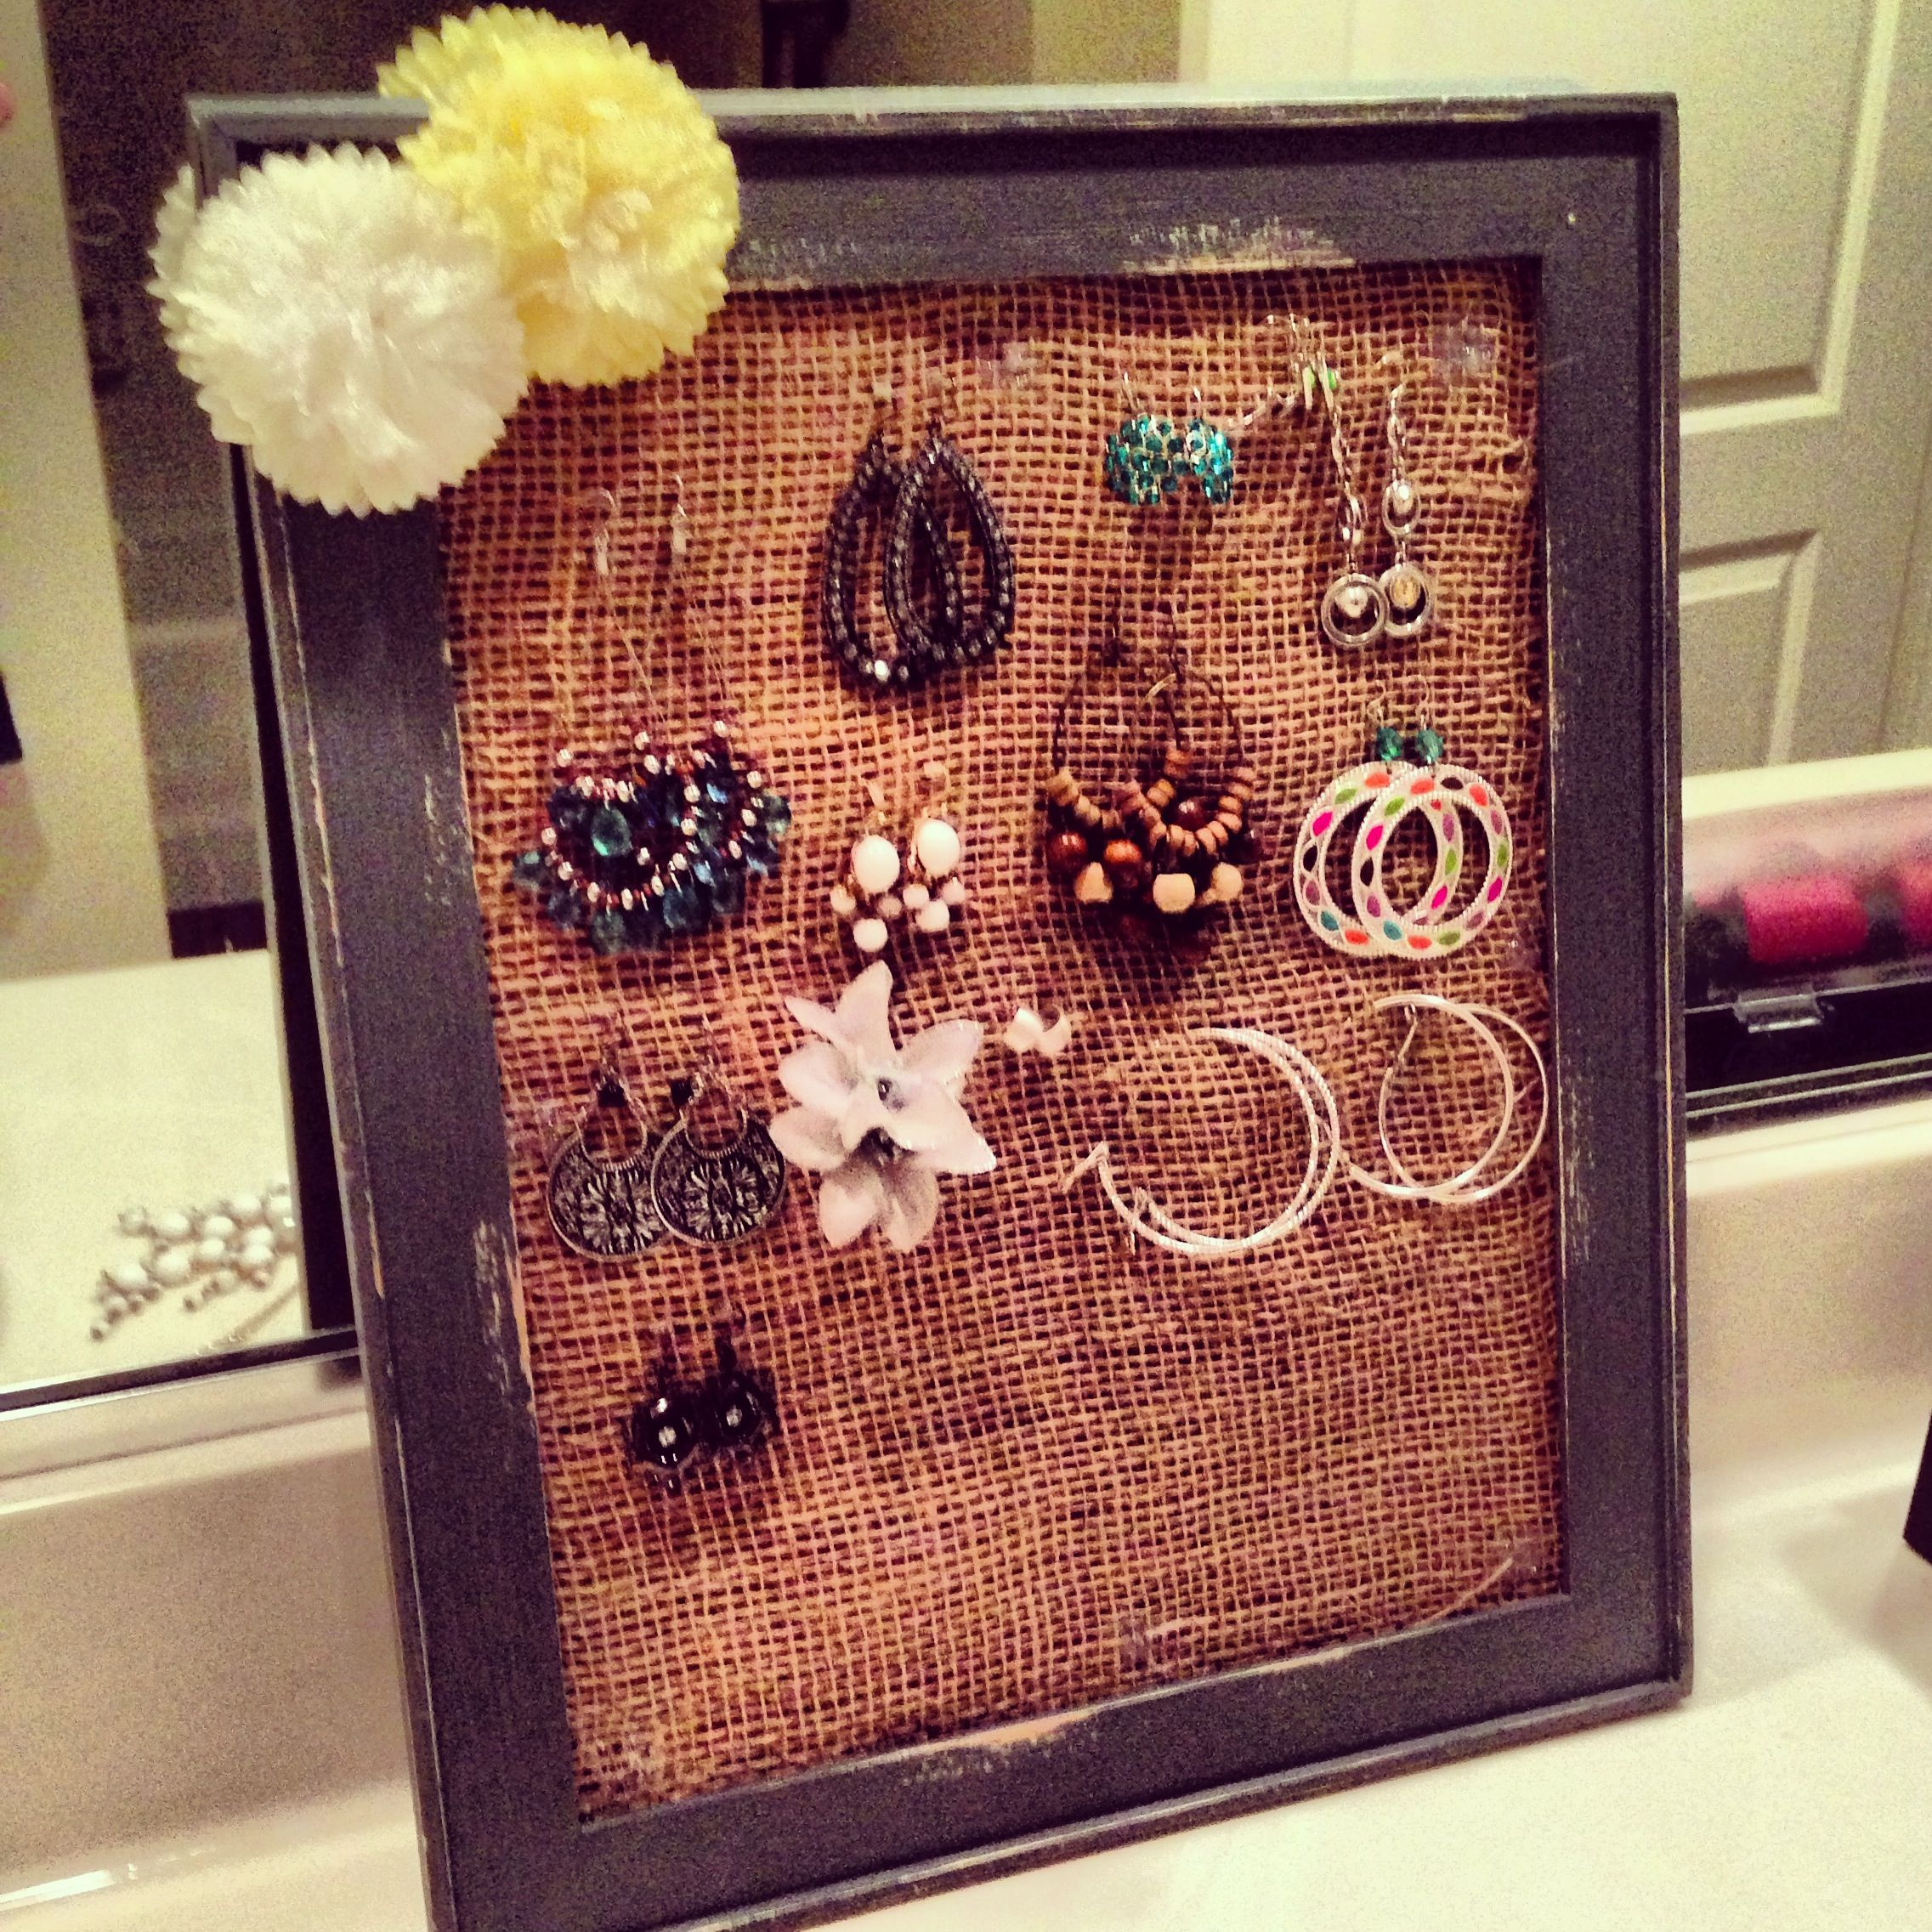 Diy Jewelry Holder Simple Burlap Frame And Fabric Flowers Diy Jewelry Holder Diy Crafts For Boyfriend Framed Burlap